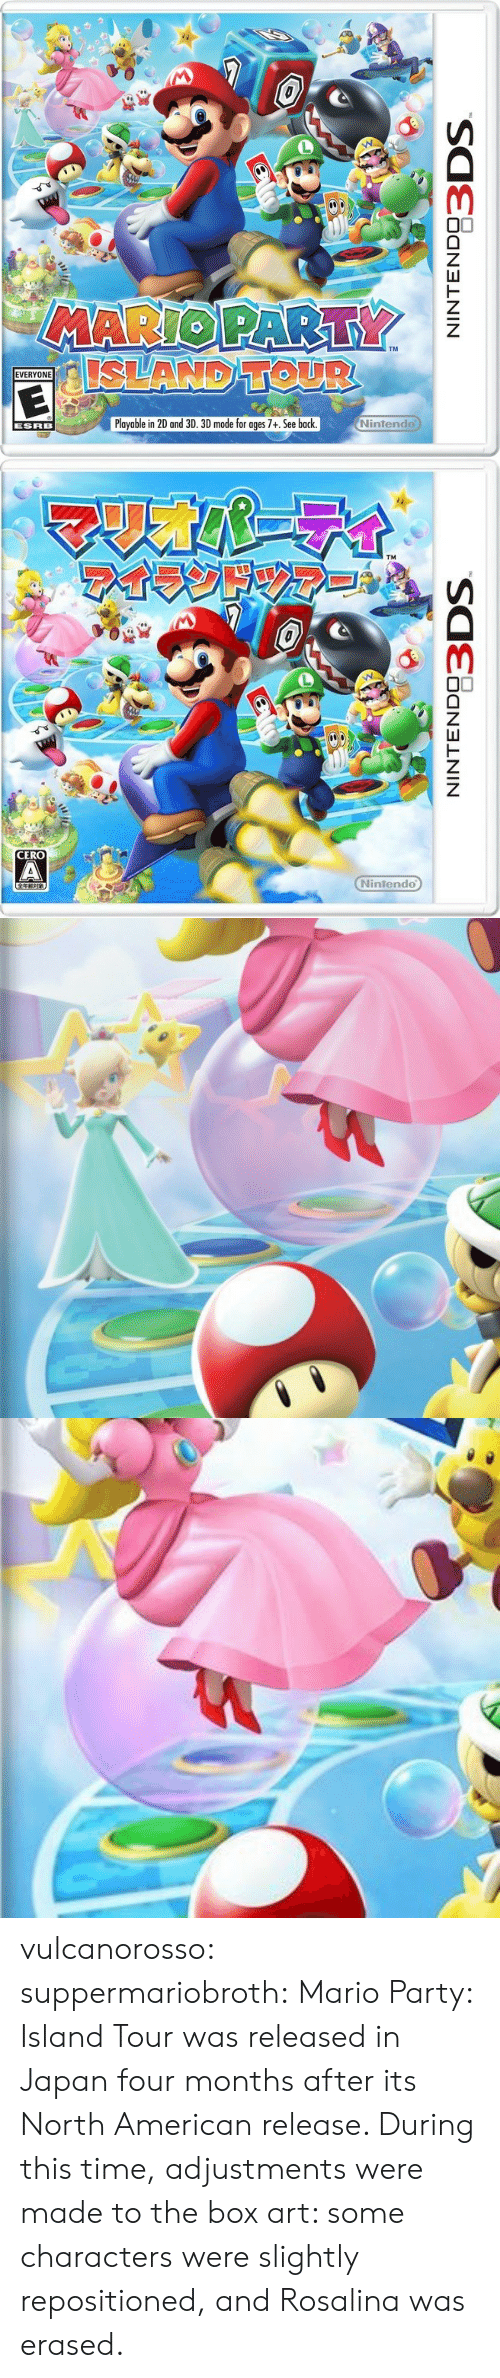 mario party: TM  EVERYONE  Playable in 2D and 3D. 3D mode for ages 7+. See back  Nintendo  ESRB   CERO  Nintendo vulcanorosso:  suppermariobroth: Mario Party: Island Tour was released in Japan four months after its North American release. During this time, adjustments were made to the box art: some characters were slightly repositioned, and Rosalina was erased.